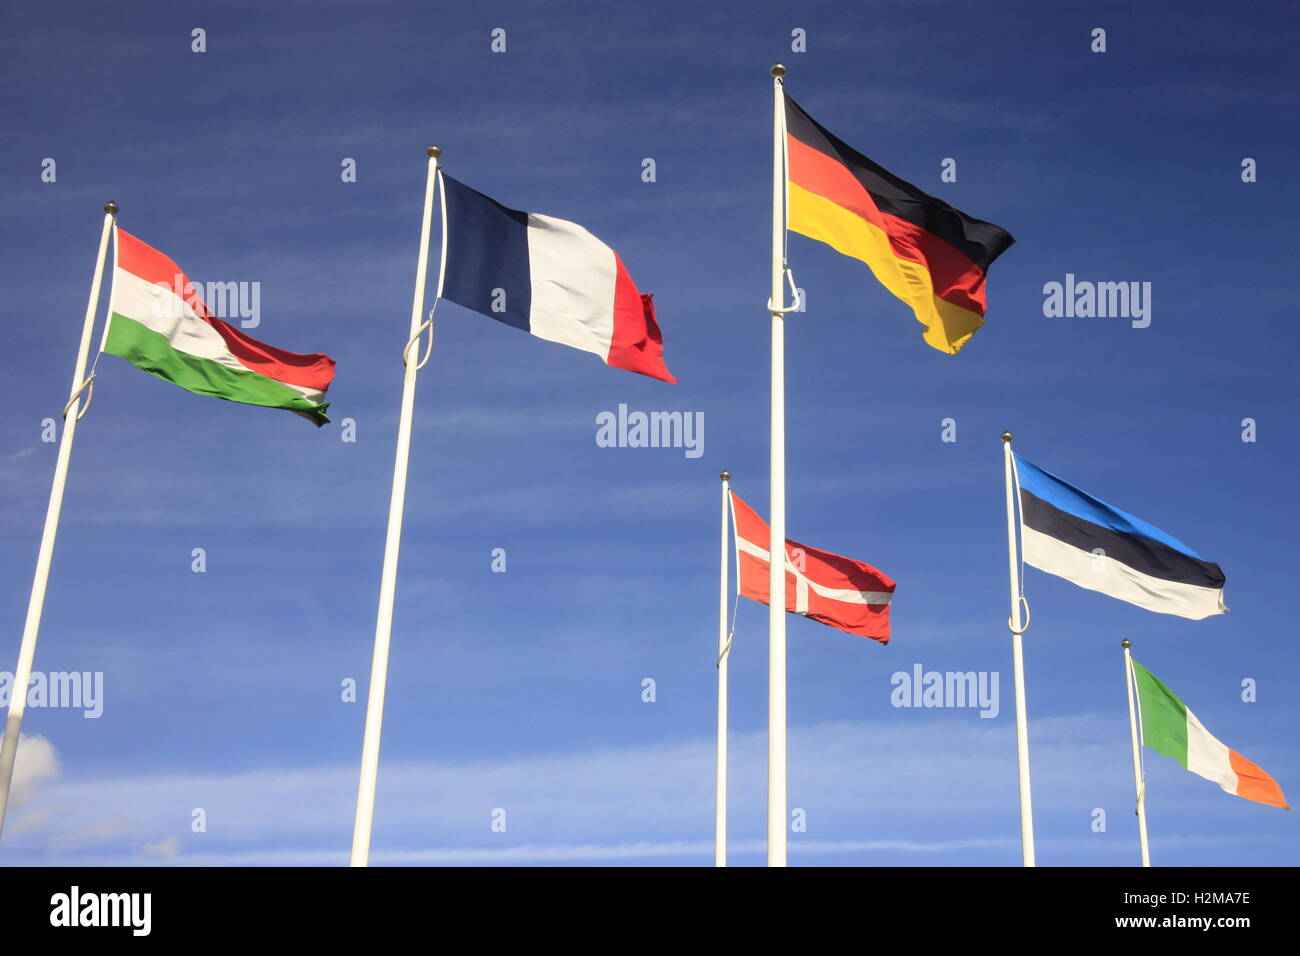 European Union International flags in Hull against a blue sky with wispy clouds. - Stock Image